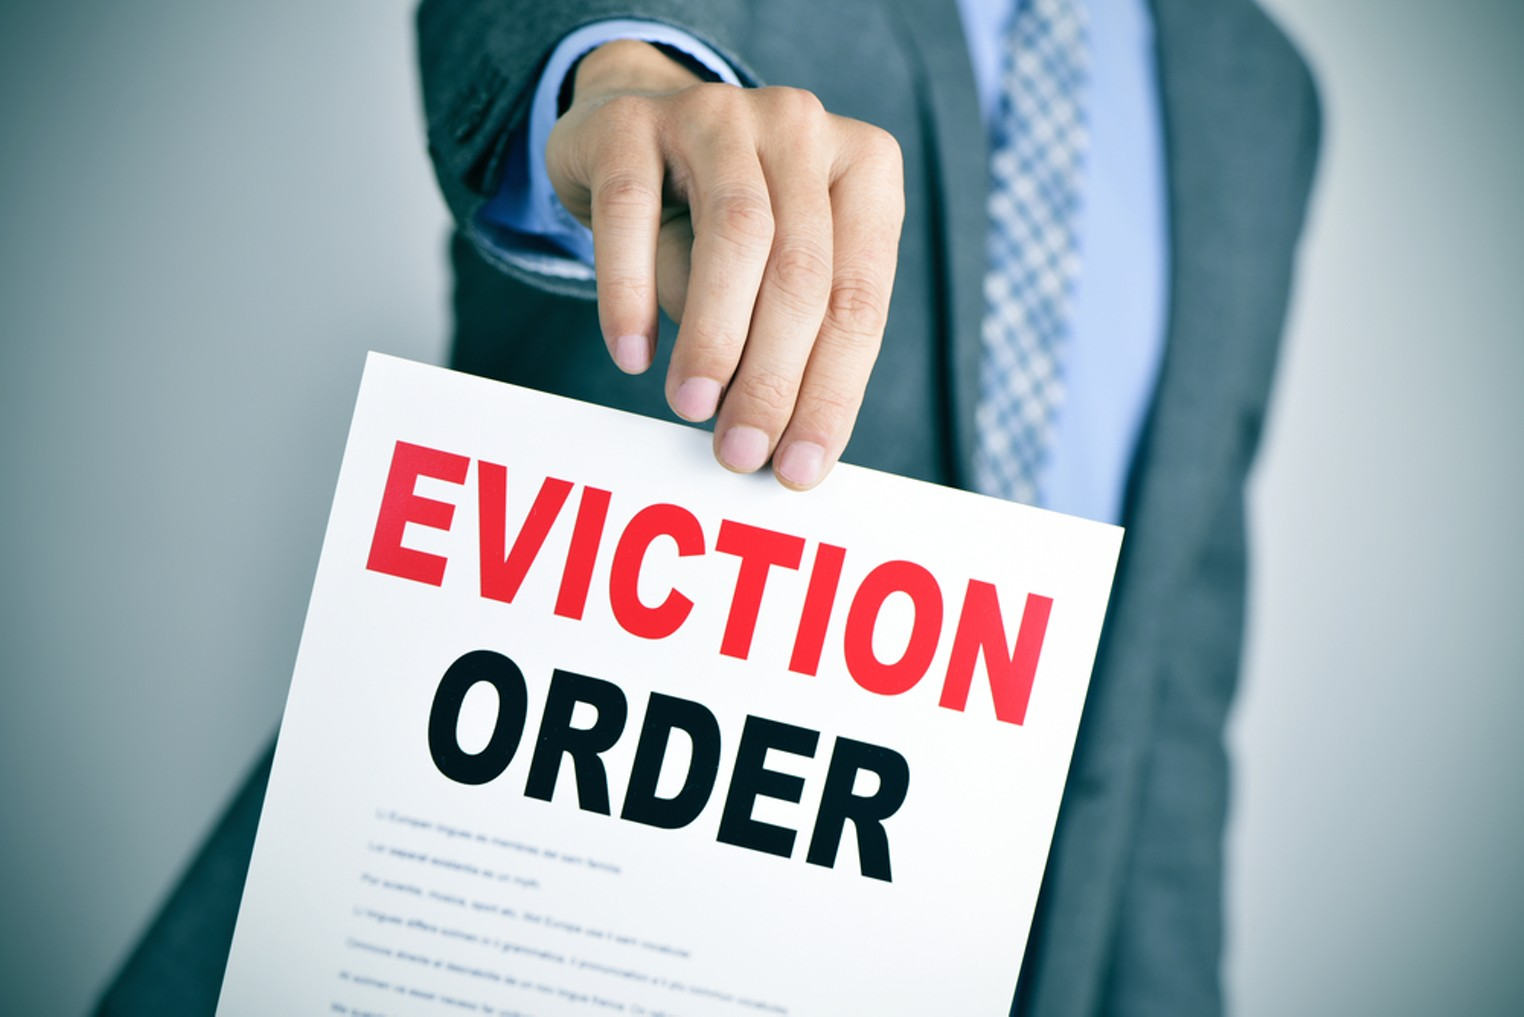 eviction order by nito shutterstock.